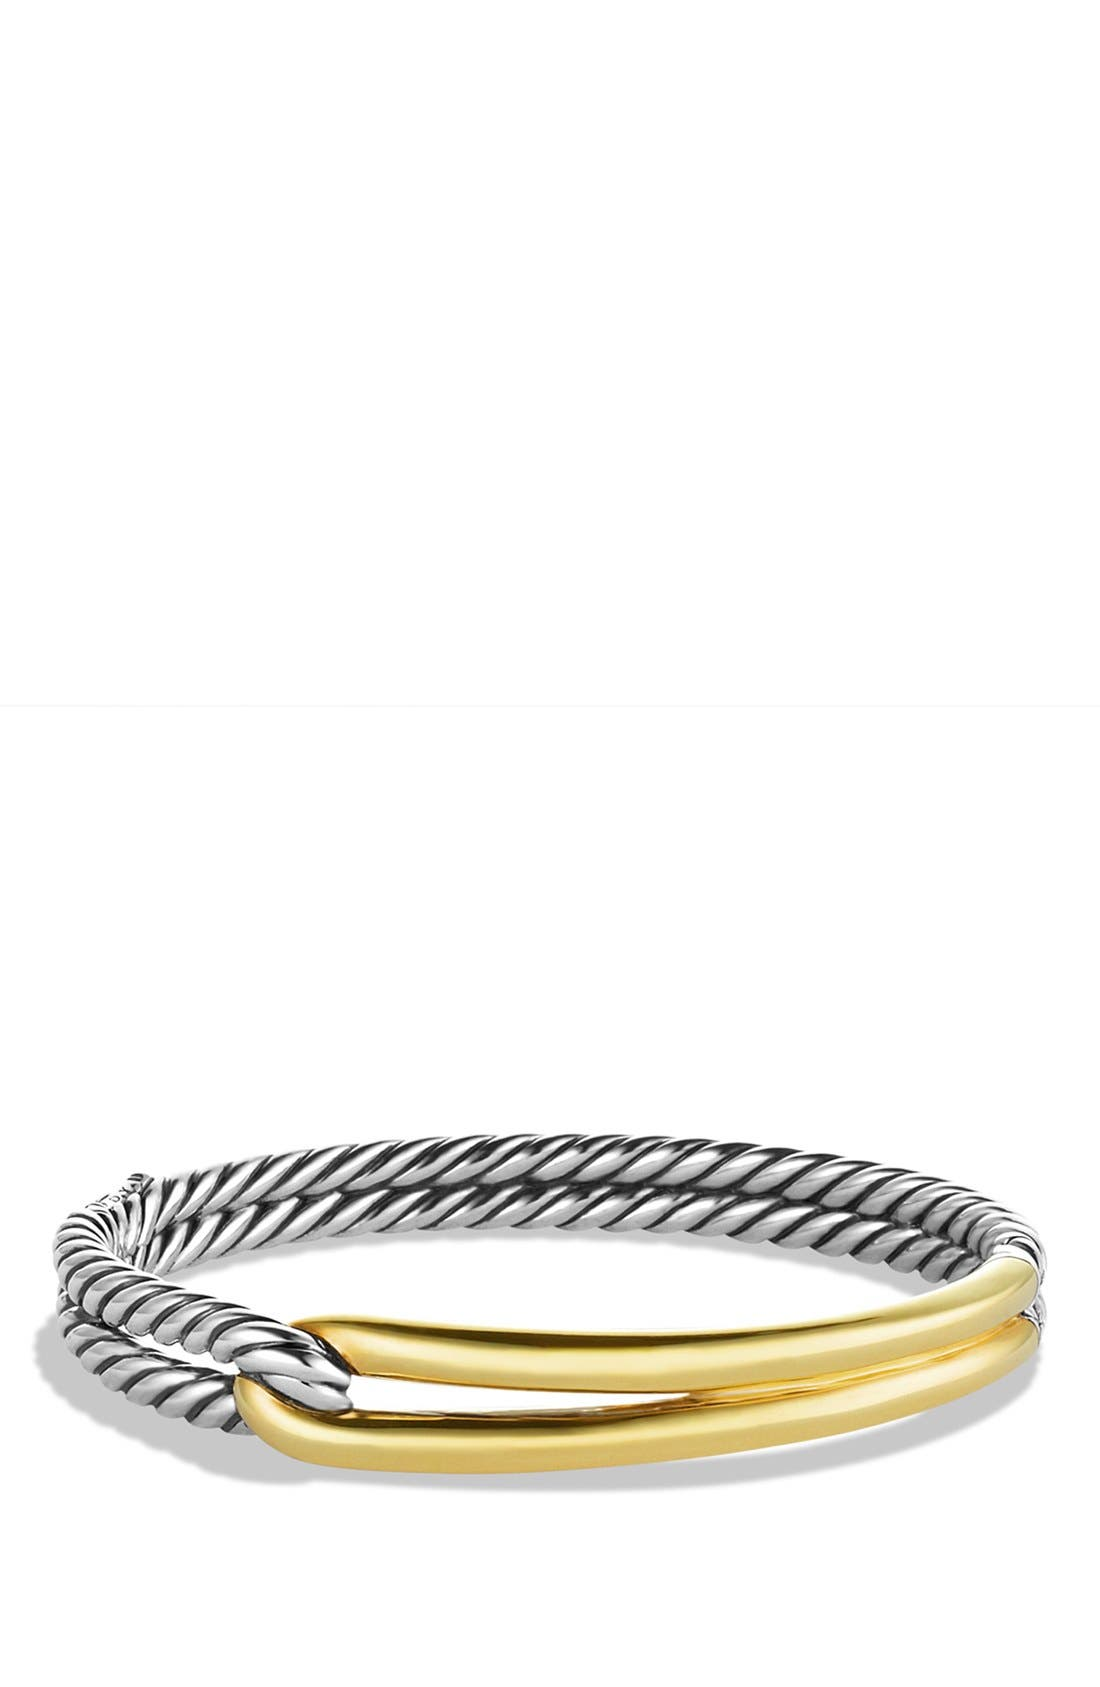 'Labyrinth' Single-Loop Bracelet with Gold,                         Main,                         color, 040